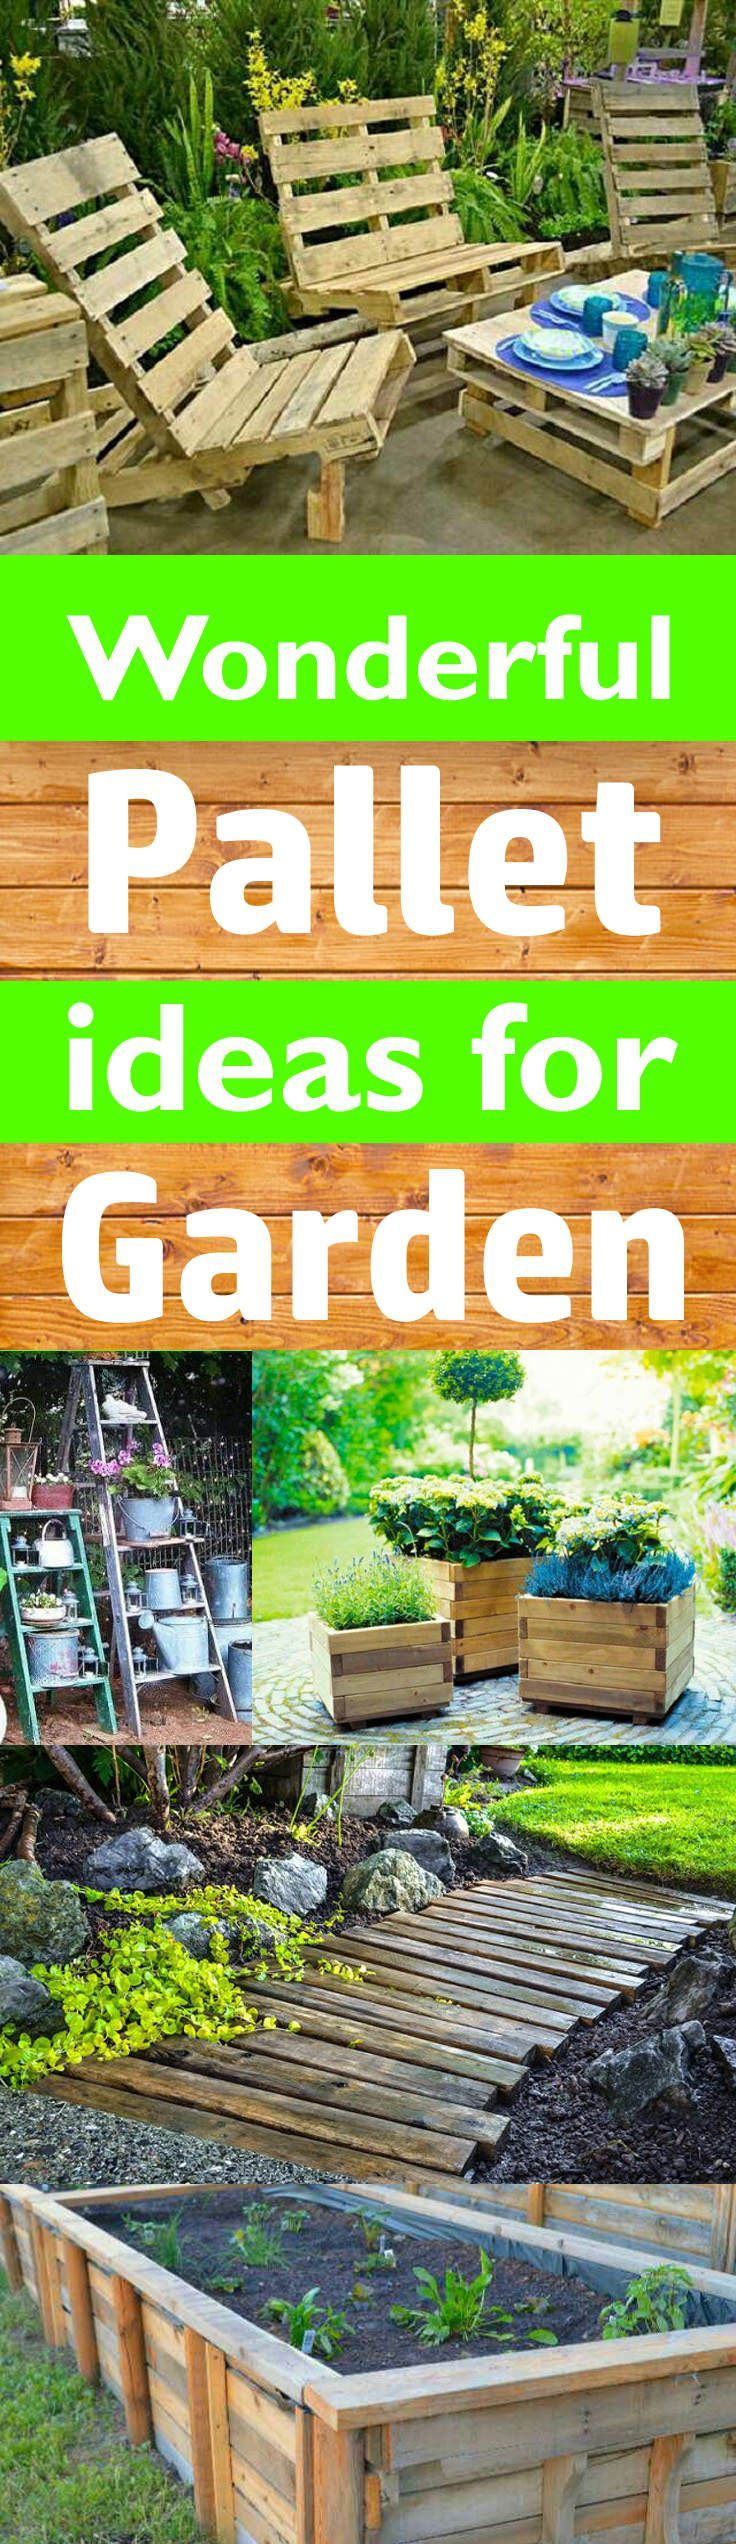 Most of the people throw away or burn wooden pallets, but do you know you can upcycle and make things out of them? With these wonderful pallet ideas for the garden, we'll show you their reuse.